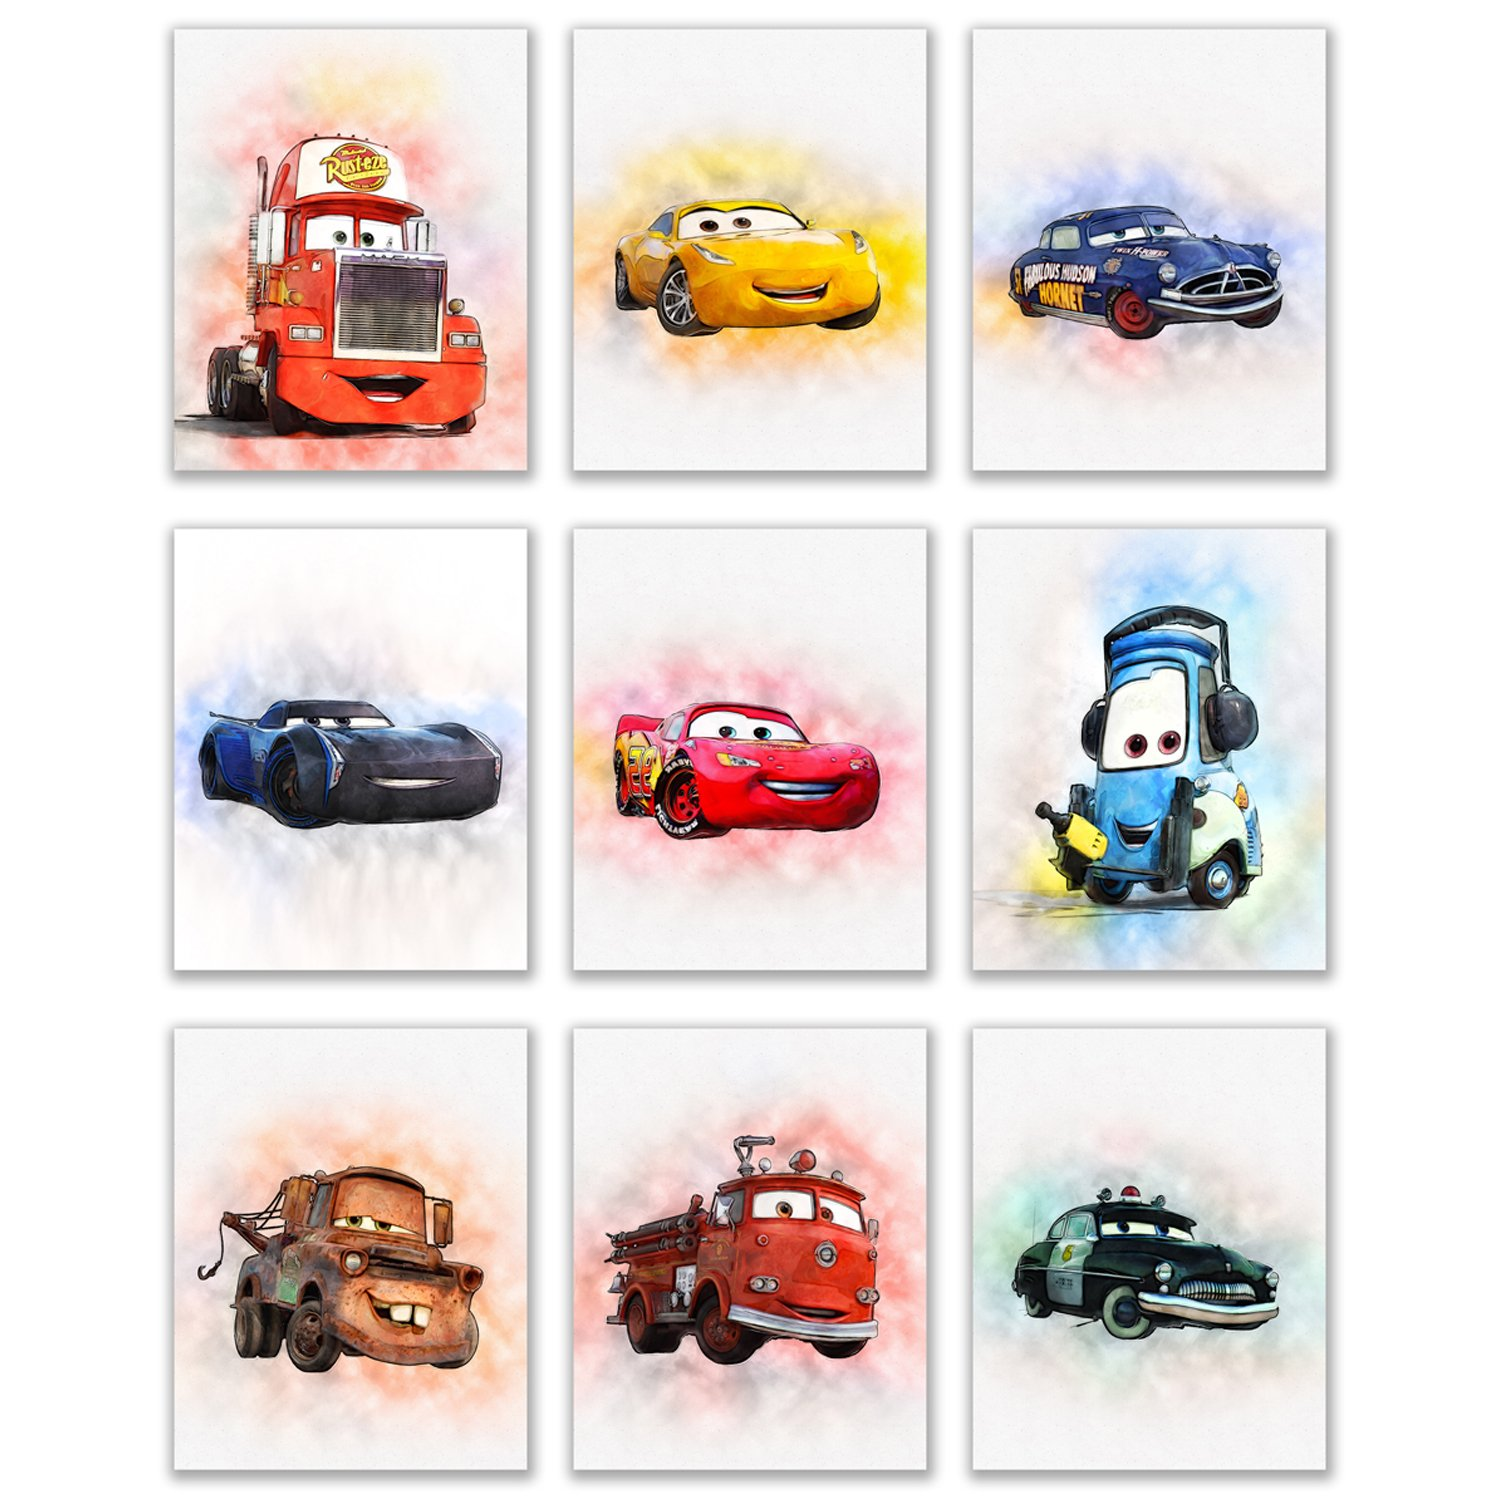 Cars Movie Poster Prints - Set of 9 (8 inches x 10 inches) Watercolor Photos - Lightning McQueen Tow Mater Doc Hudson Jackson Storm Cruz Ramirez by BigWig Prints